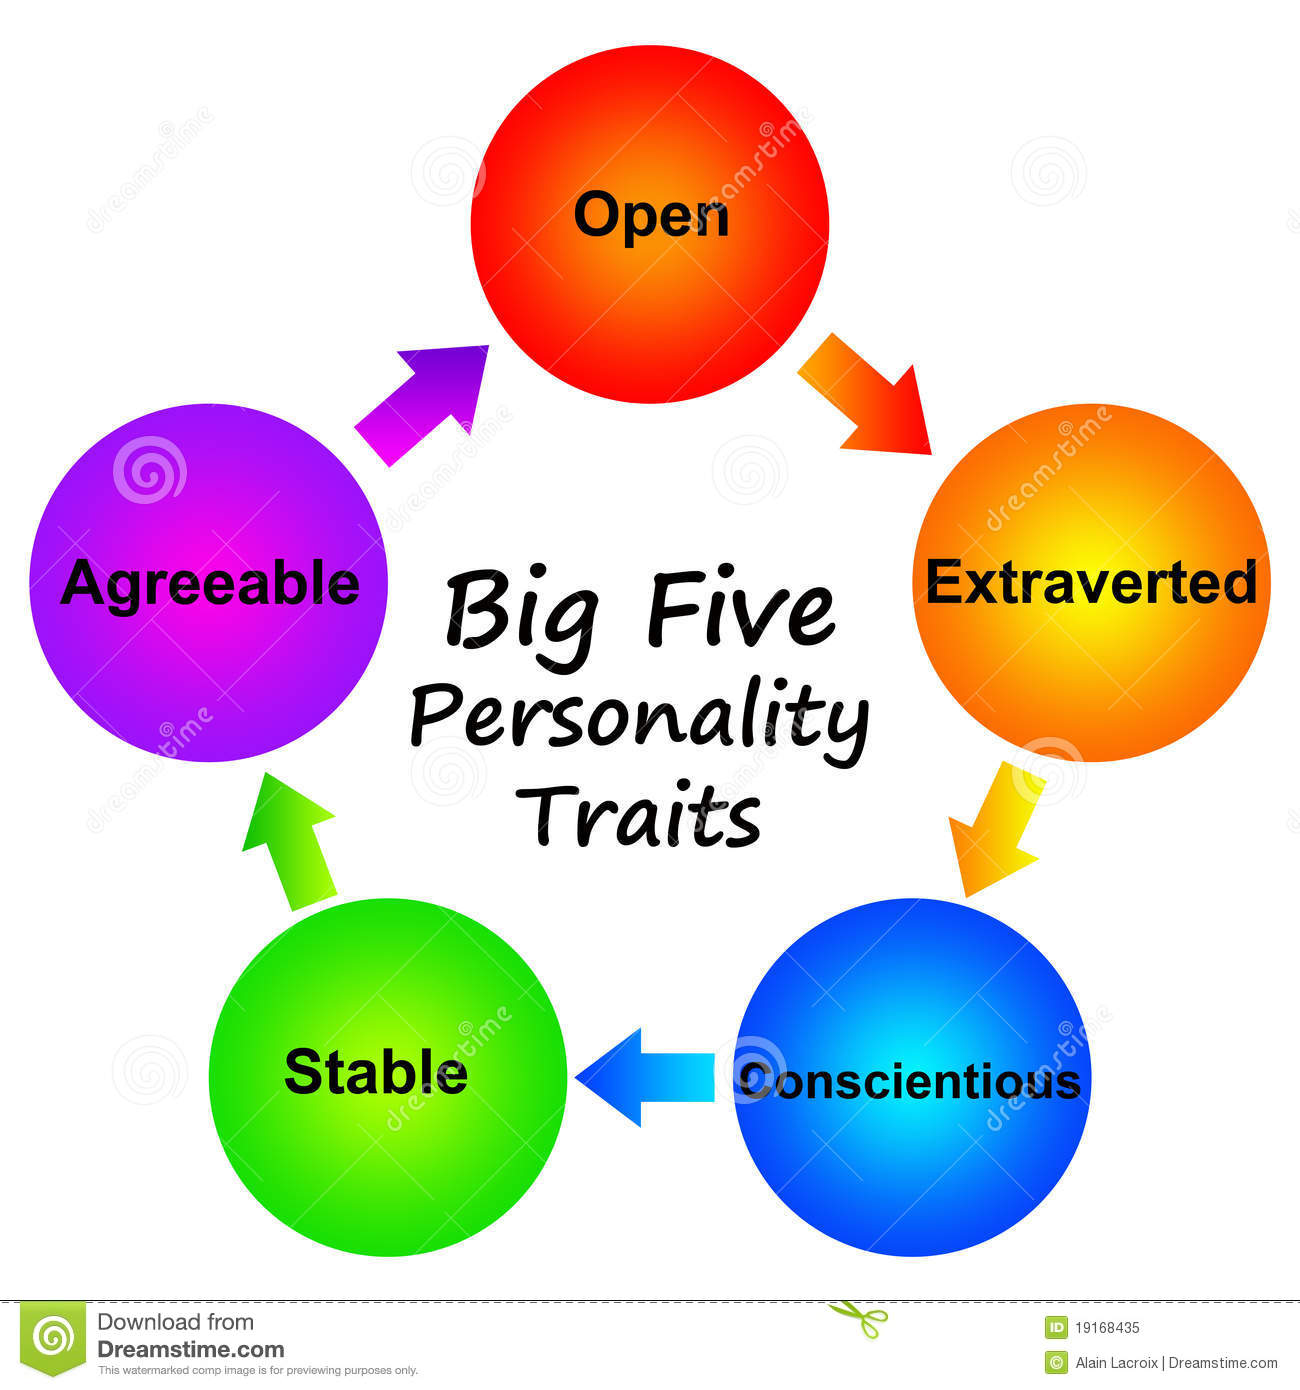 Personality traits picture freeuse download Personality Traits Royalty Free Stock Photo - Image: 19168435 picture freeuse download